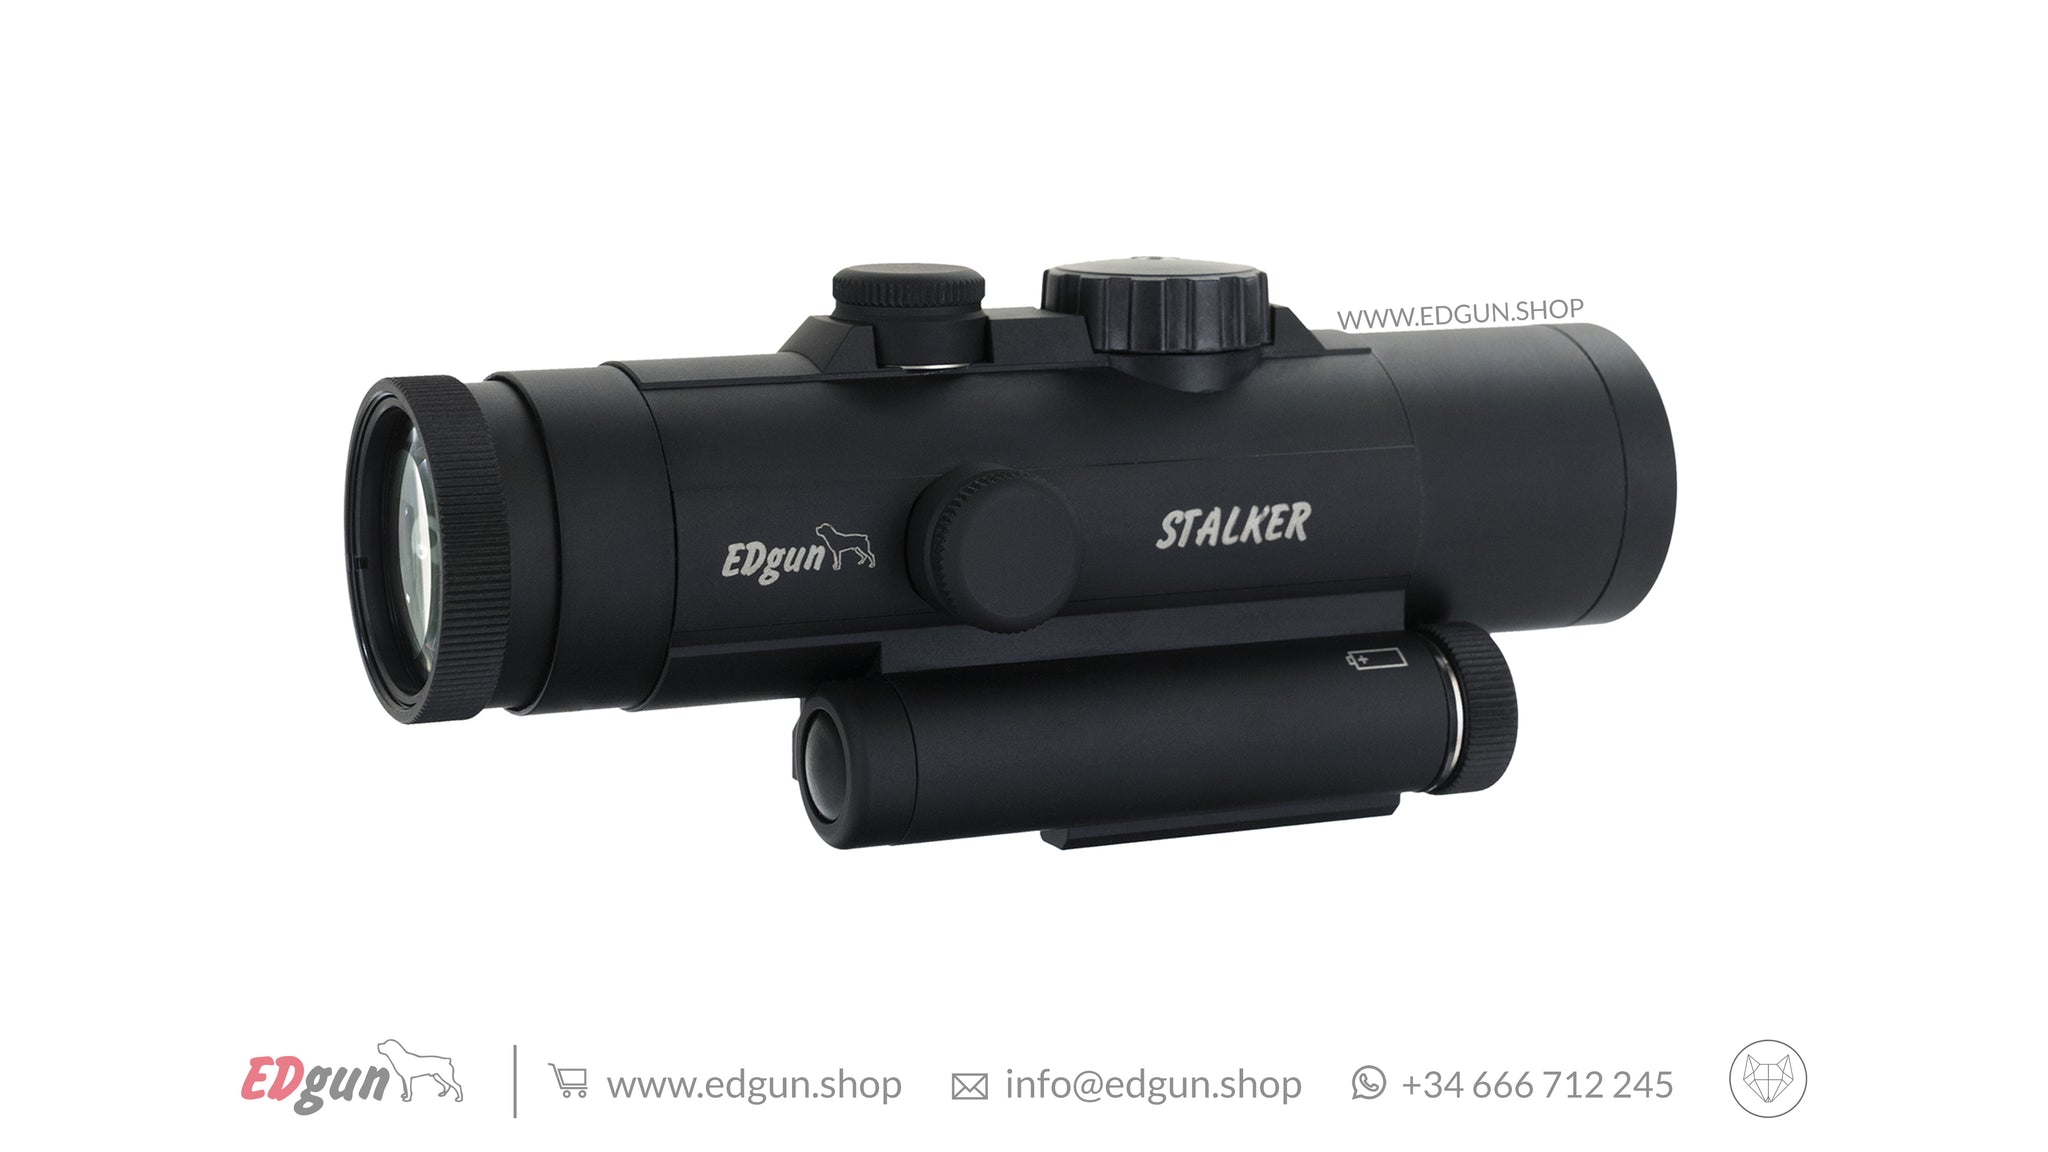 Наперсток EDgun Viewer <br /> STALKER 6X30